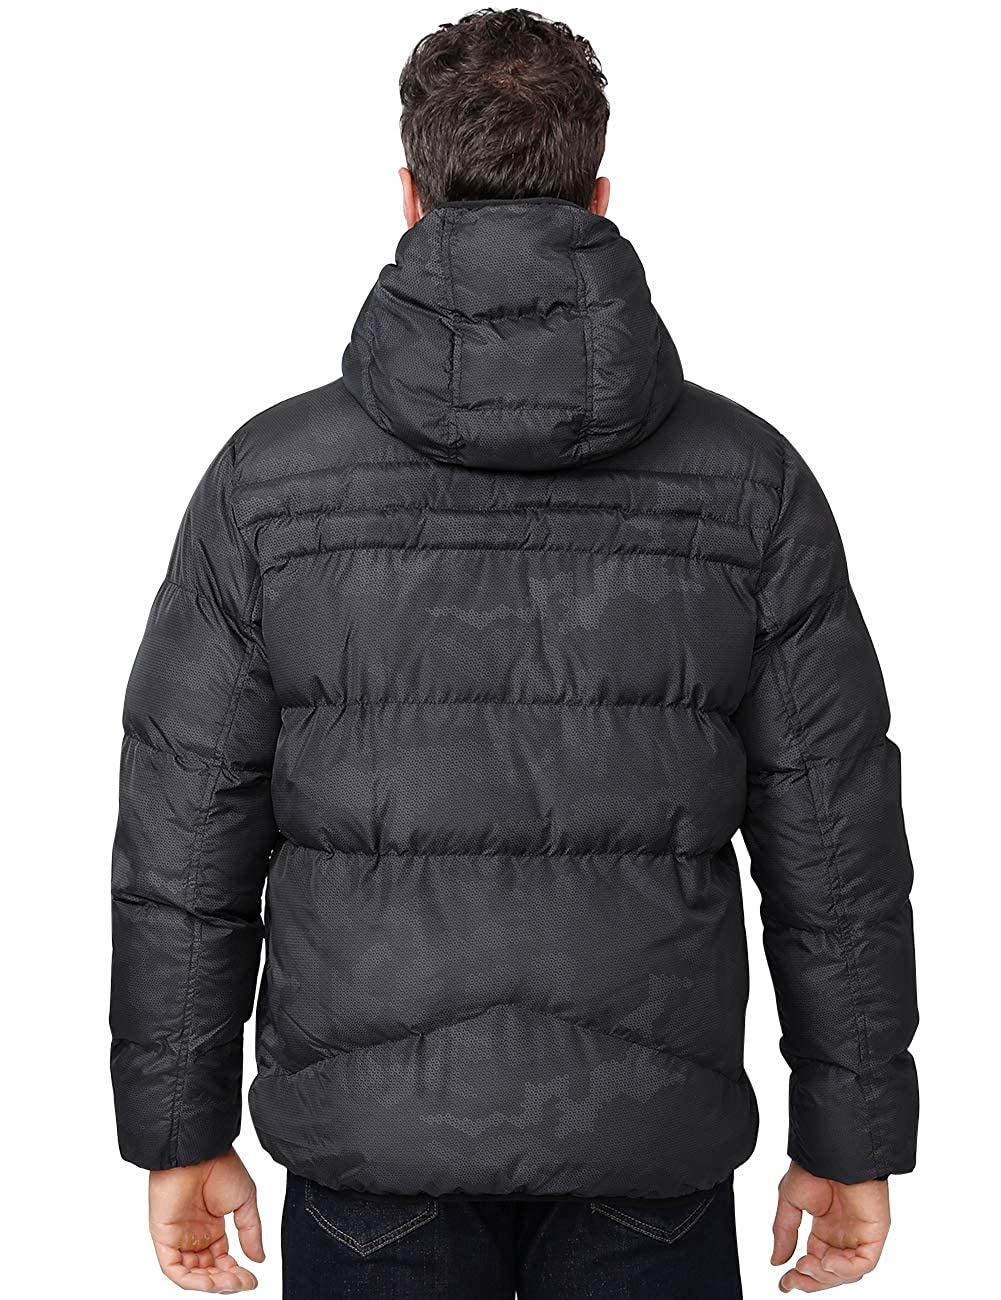 CAMEL CROWN Mens Winter Thicken Cotton Coat Puffer Windproof Jacket with Hood Inner Pocket